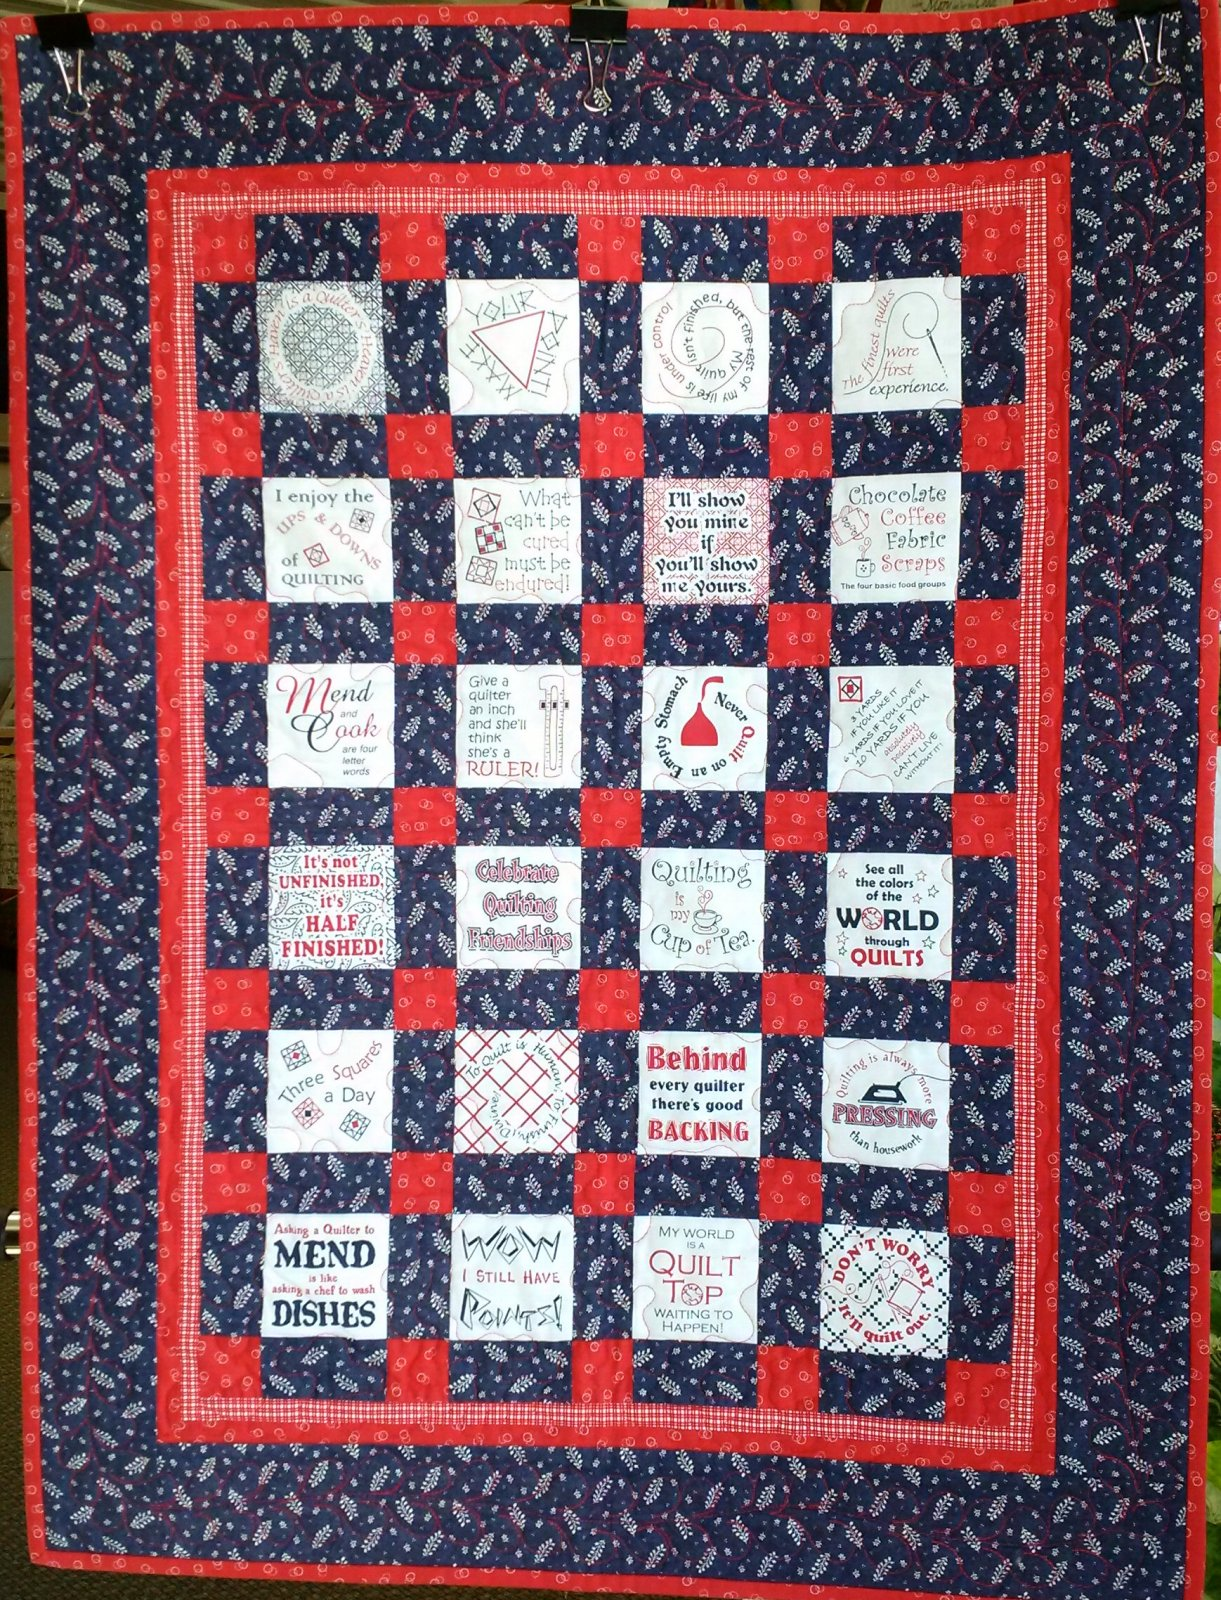 Thinking Out Loud Quilt - Navy & Red